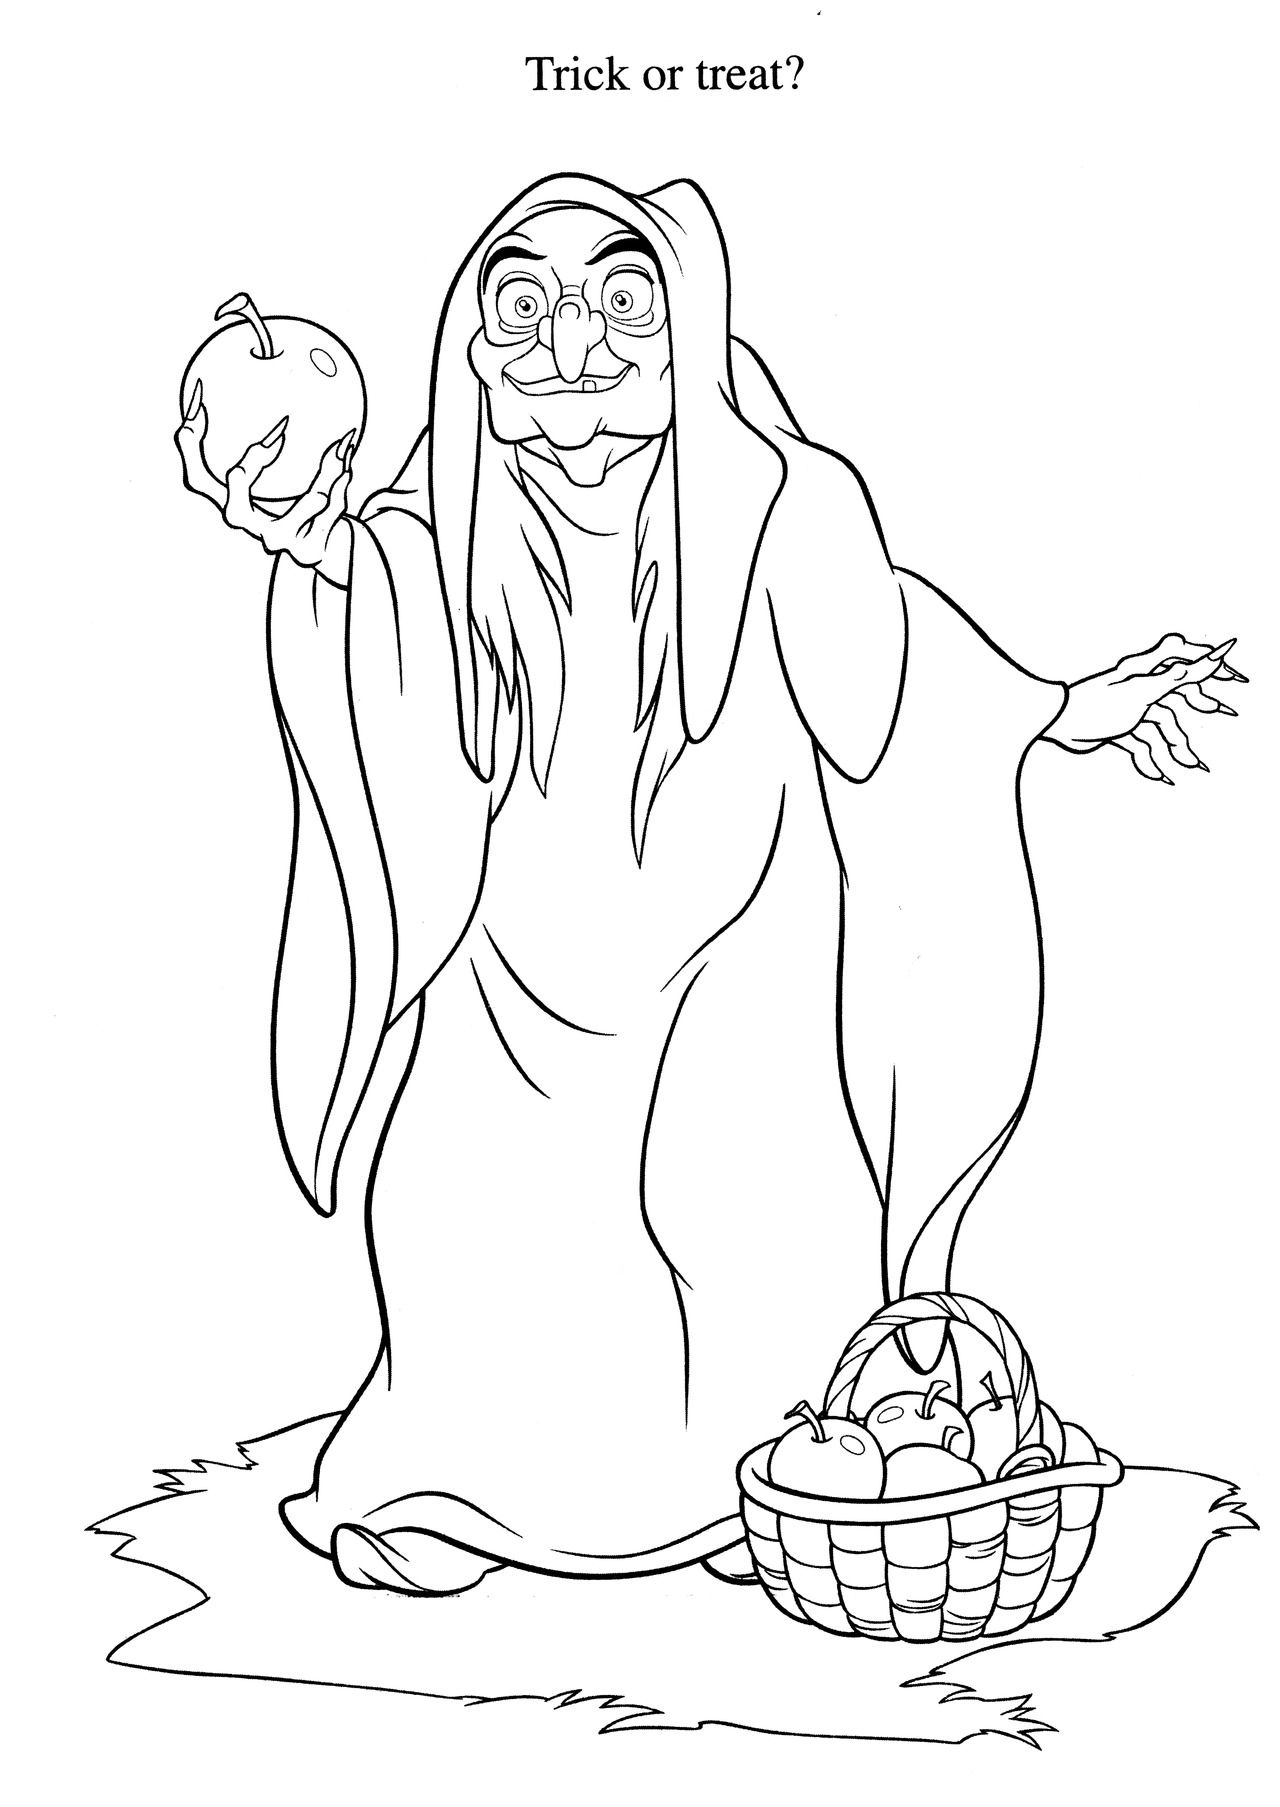 Disney villains coloring pages online - Snow White Witch Colouring Page